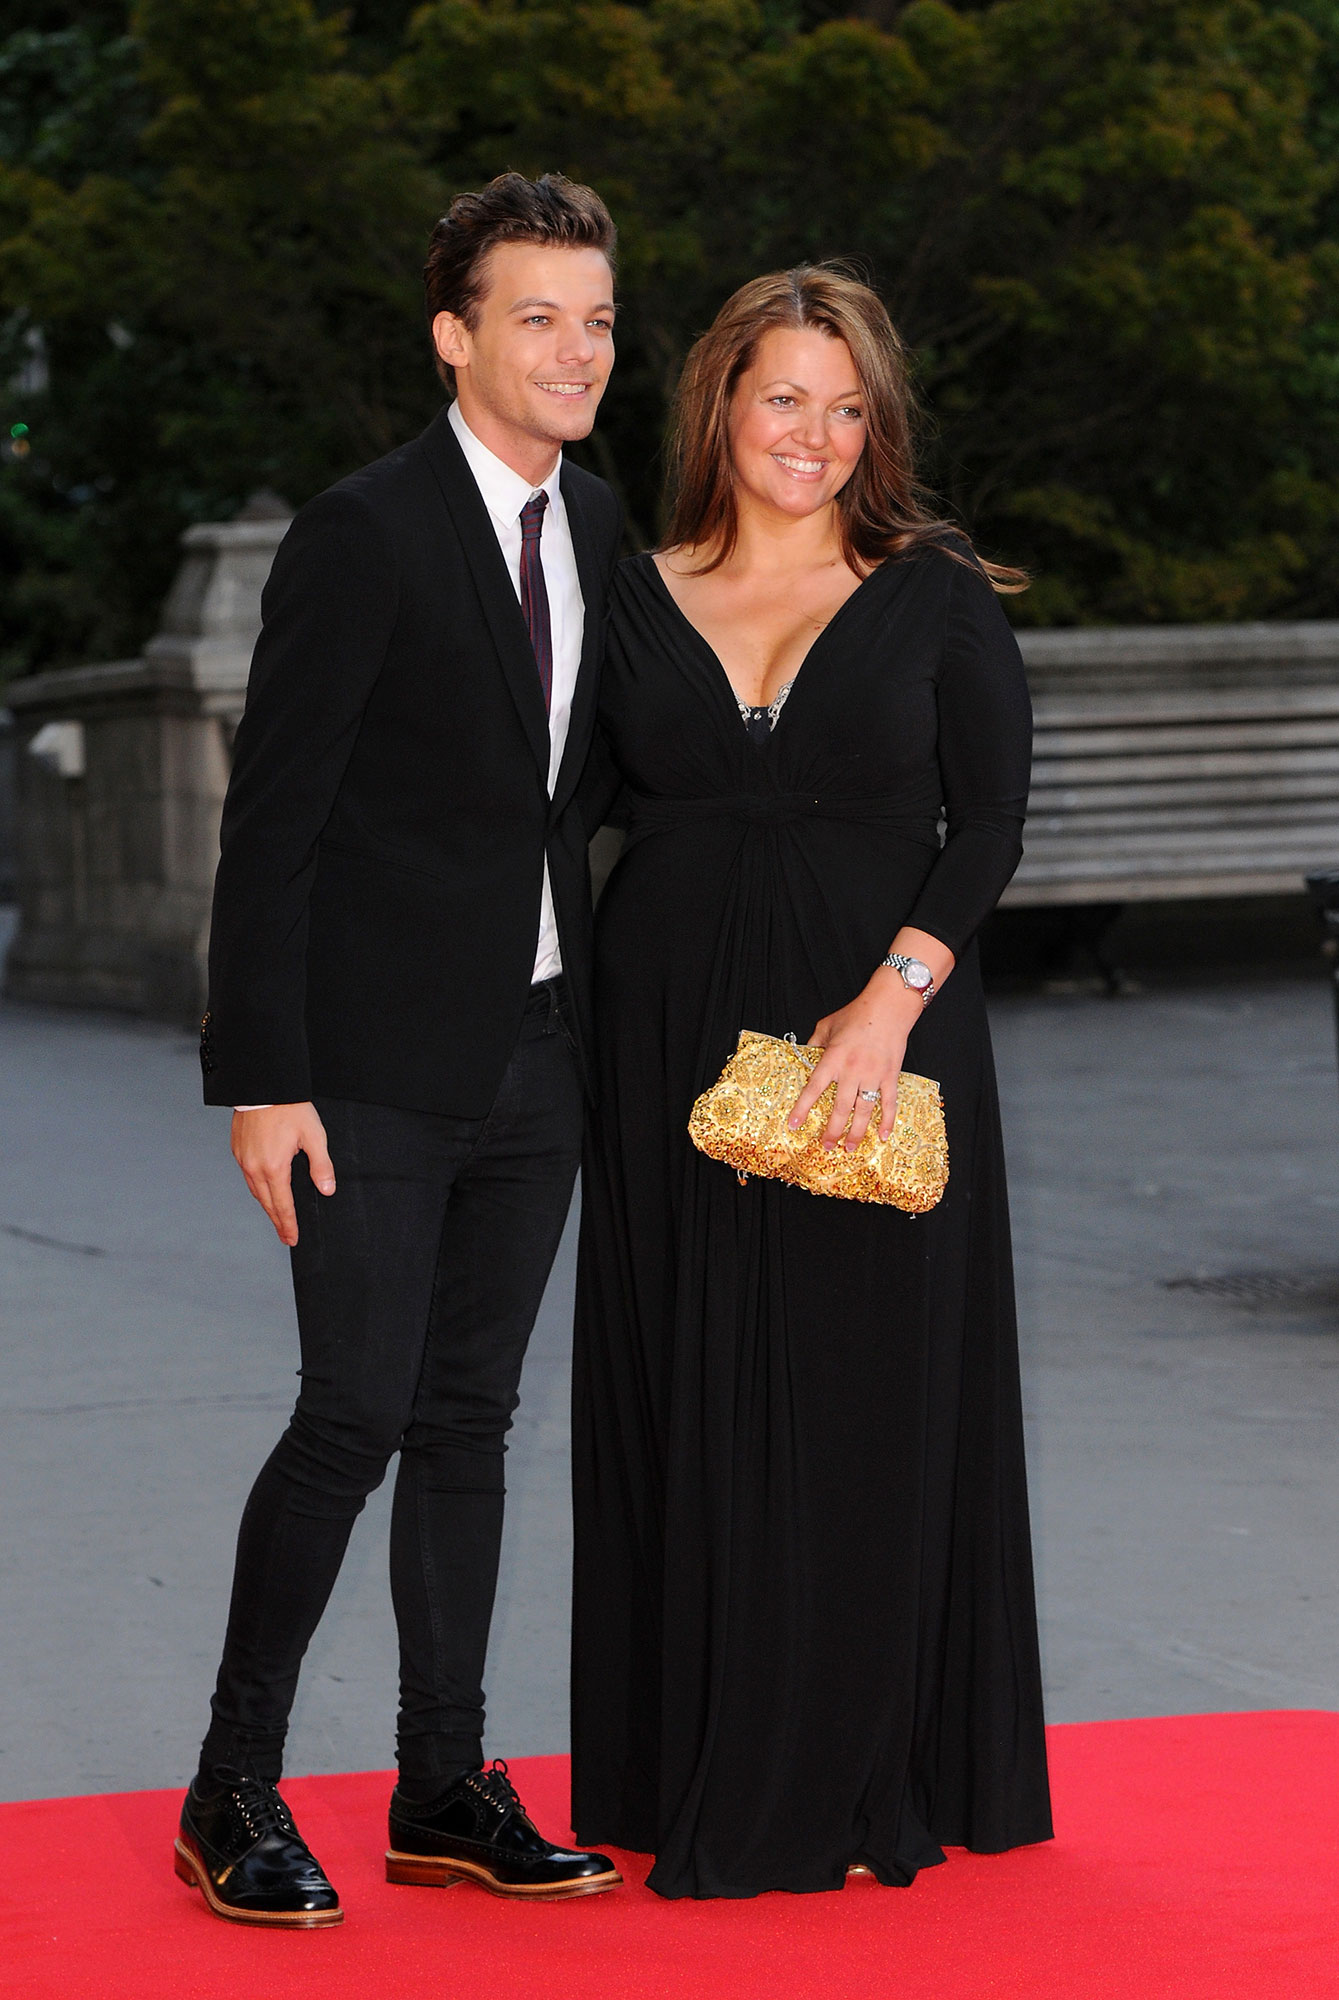 Louis Tomlinson Speaks Out for the First Time Following His Sister's Death - Louis Tomlinson and Mother Johannah Deakin attend the Believe in Magic Cinderella Ball at Natural History Museum on August 10, 2015 in London, England.